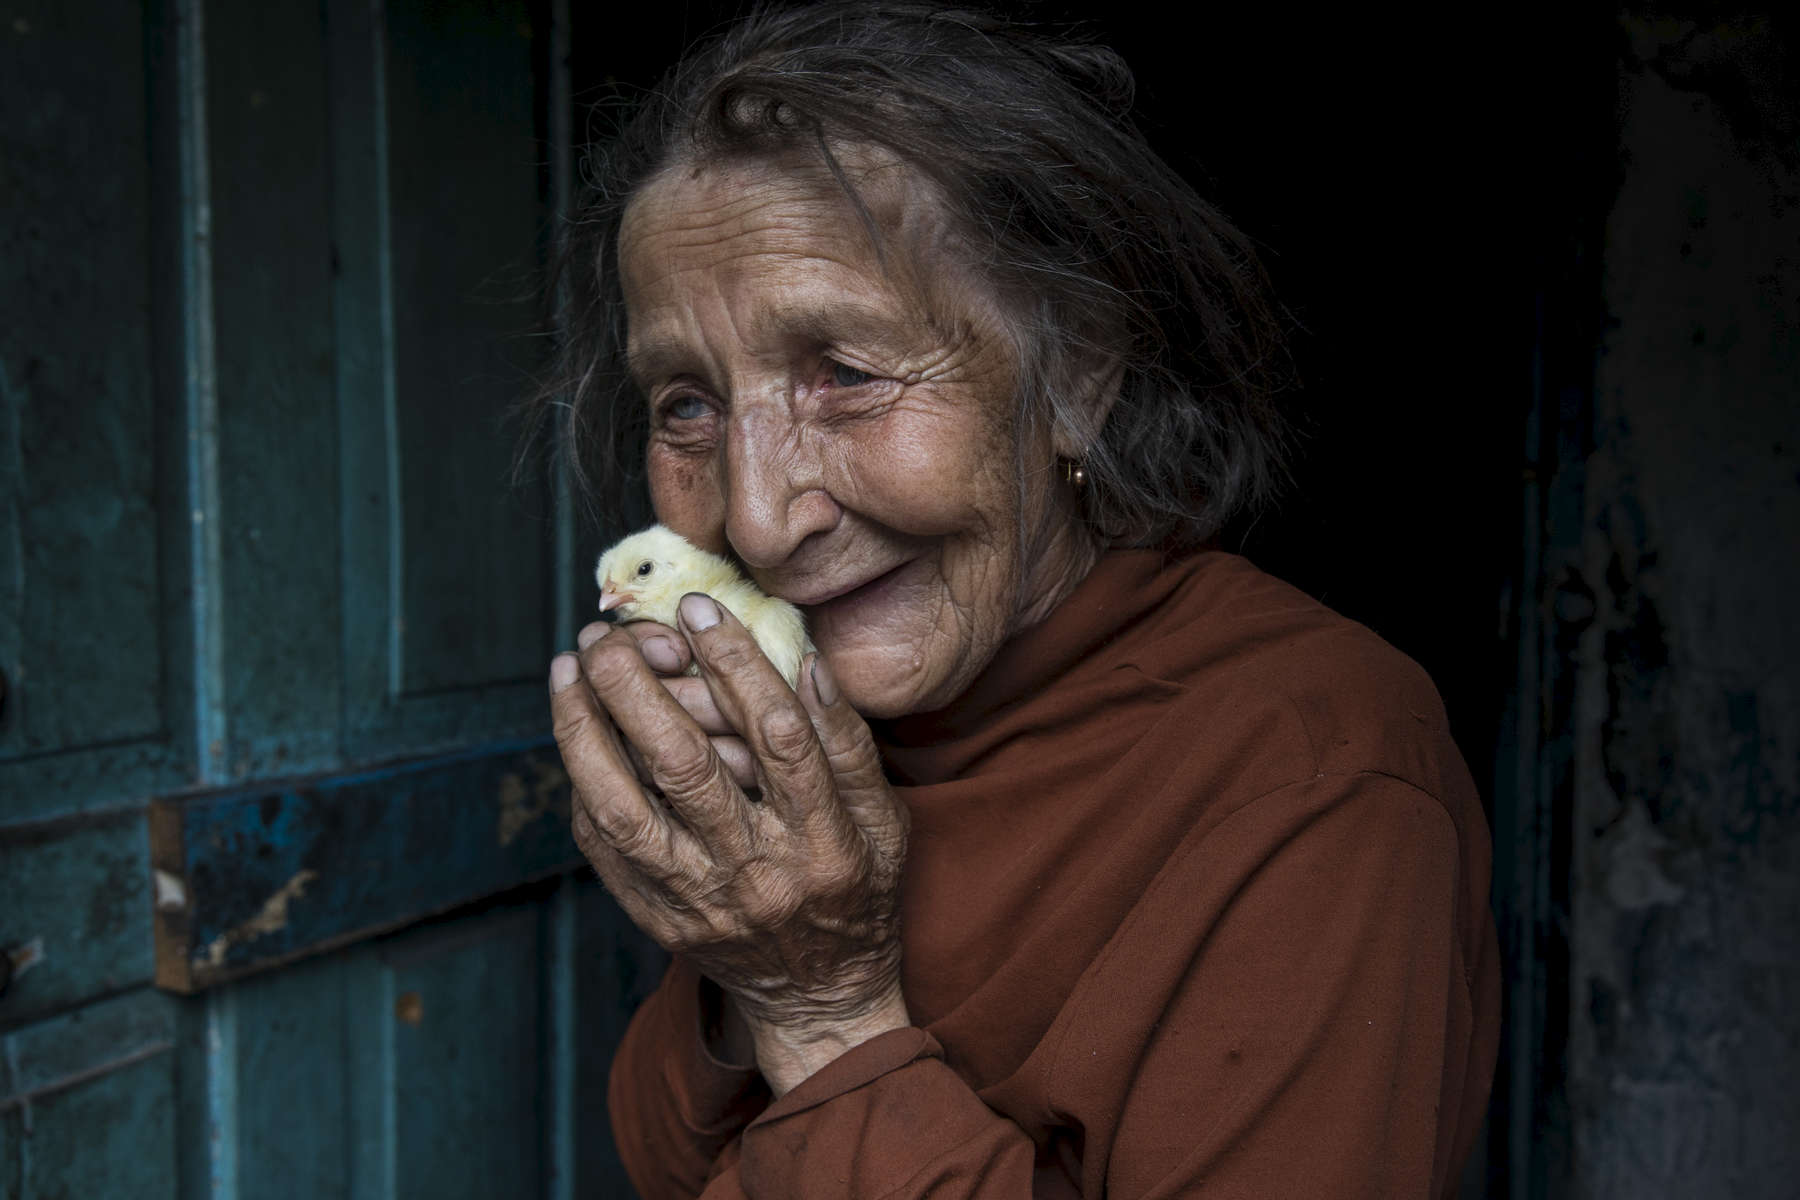 Opytne, Eastern Ukraine:  Mariya Gorpynych, age 76, lives alone. She holds new chicks delivered by ICRC as part of a humanitarian aid service for elderly that live alone. It also allows them to raise chickens for some income. She speaks with tears in her eyes when talking about the death of her son. Victor,48 was killed due to the war in 2016, he was fatally injured by shelling that hit the home. He died in her hands. Her husband, died in the same year from a heart attack  from extreme stress of living too close to the front line. Mariya refuses to leave her village because her family are buried there.{quote}I have nowhere to flee, my whole family is buried here.{quote}  {quote}I got used to the continued shelling.{quote} Opytne is a war torn village on the contact line where only 43 people are left due to the dangers.